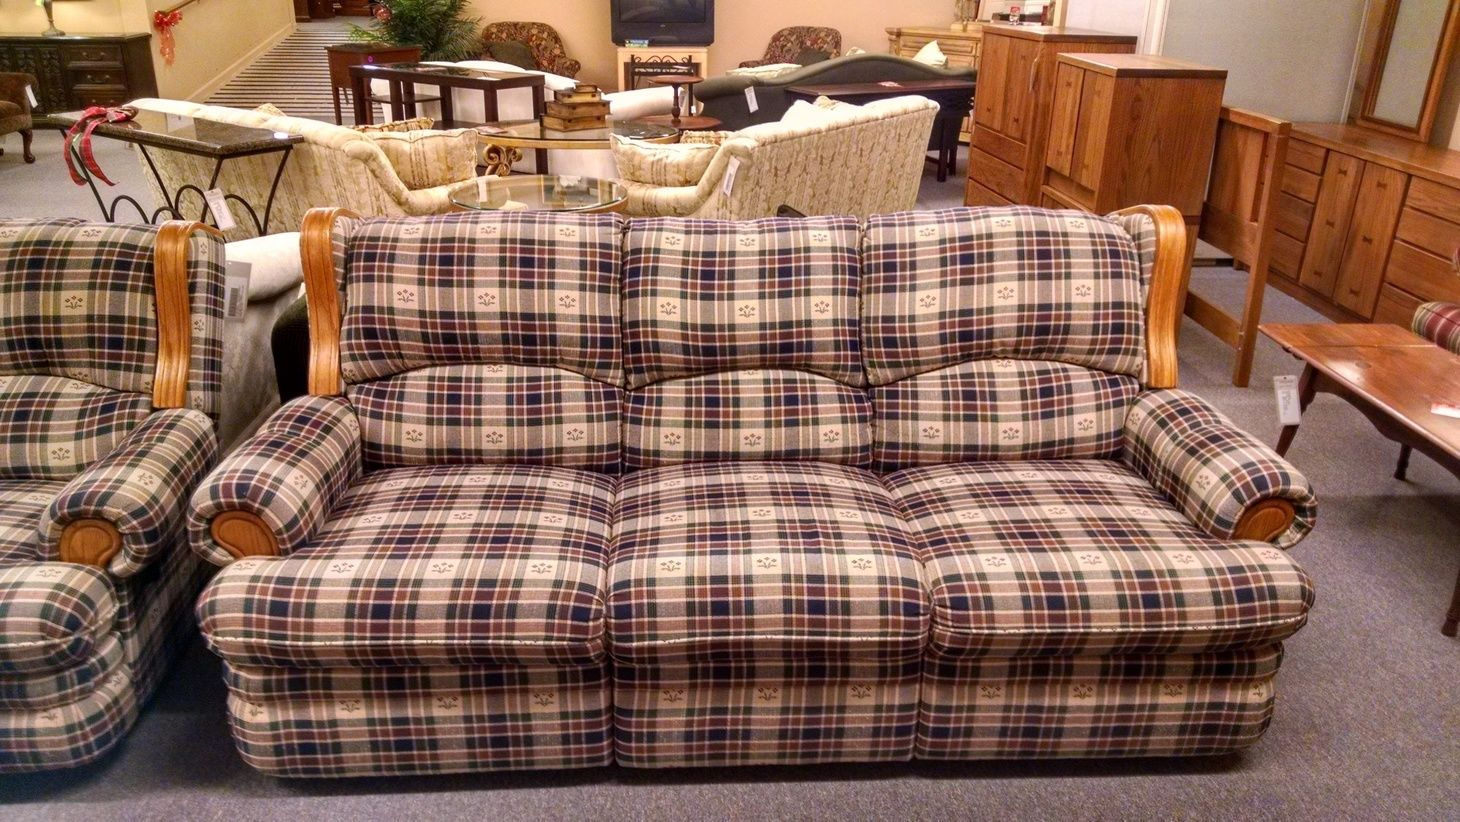 Berkline Country Plaid Sofa Delmarva Furniture Consignment